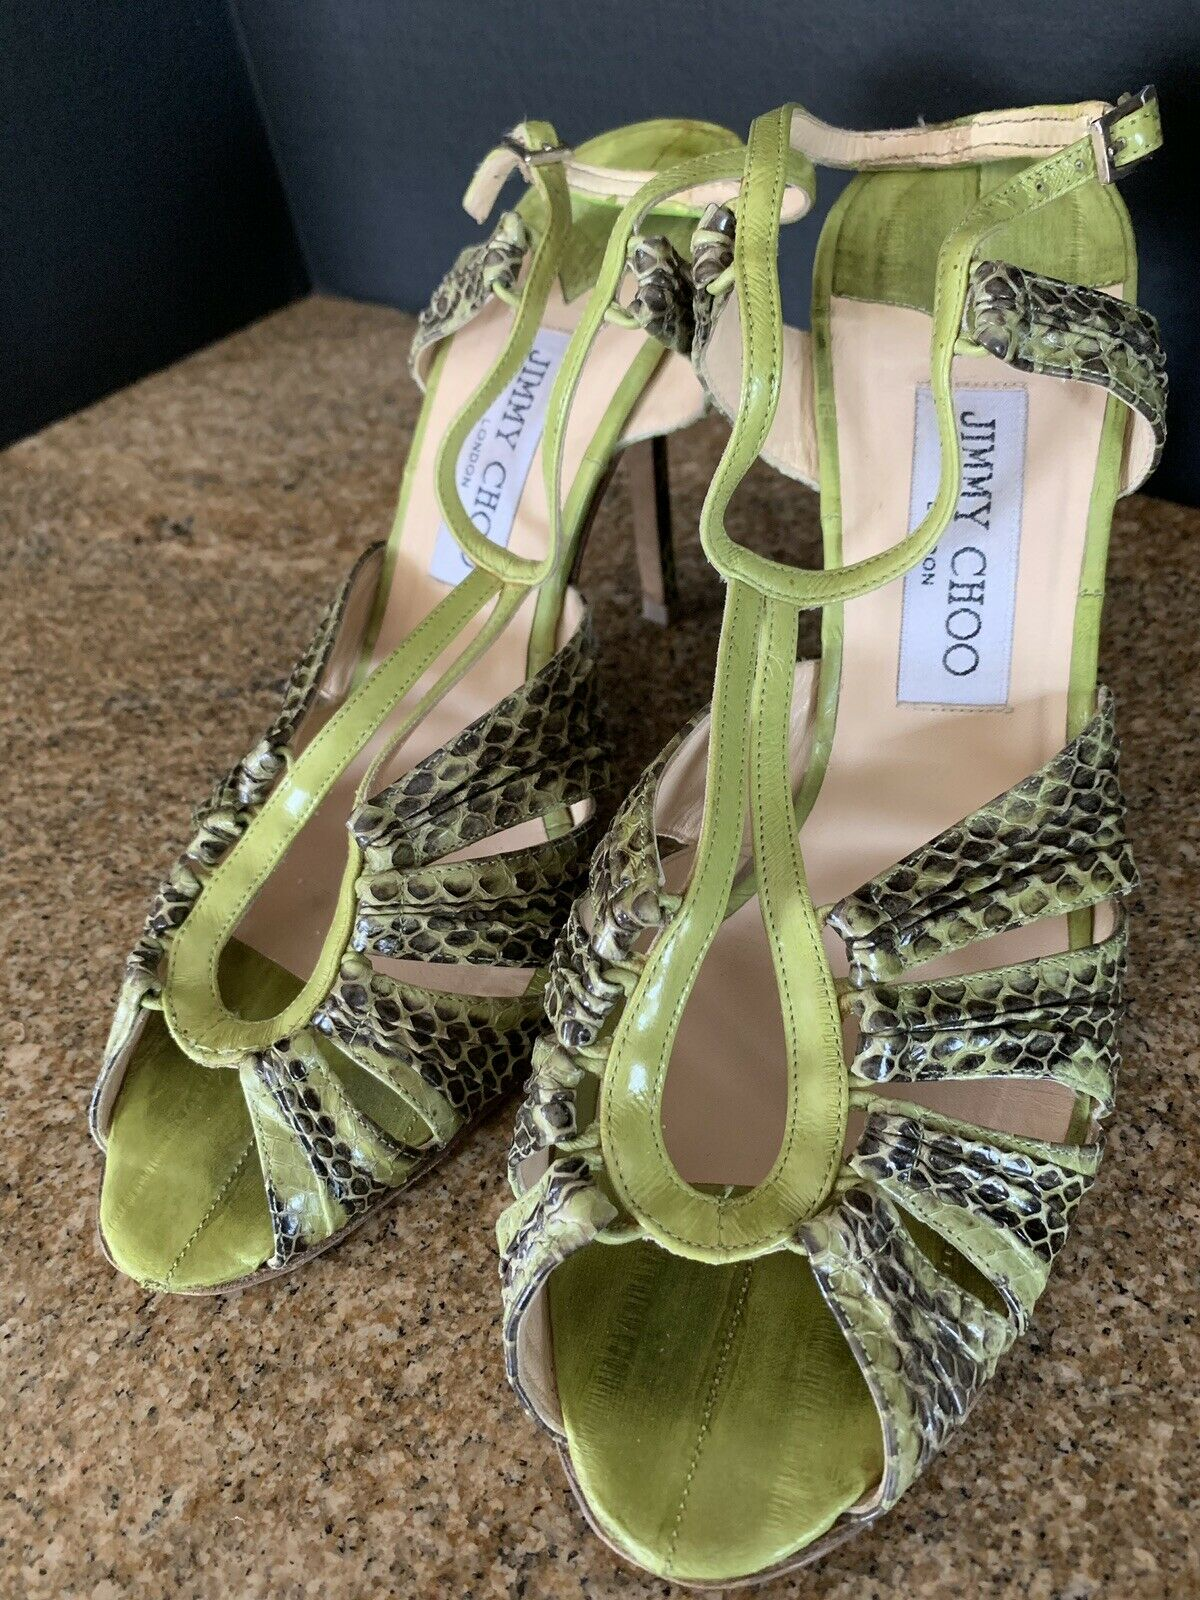 JIMMY CHOO Lime Green Speckled Snakeskin Raven Sandals, Size 39.5 9 Retail  895